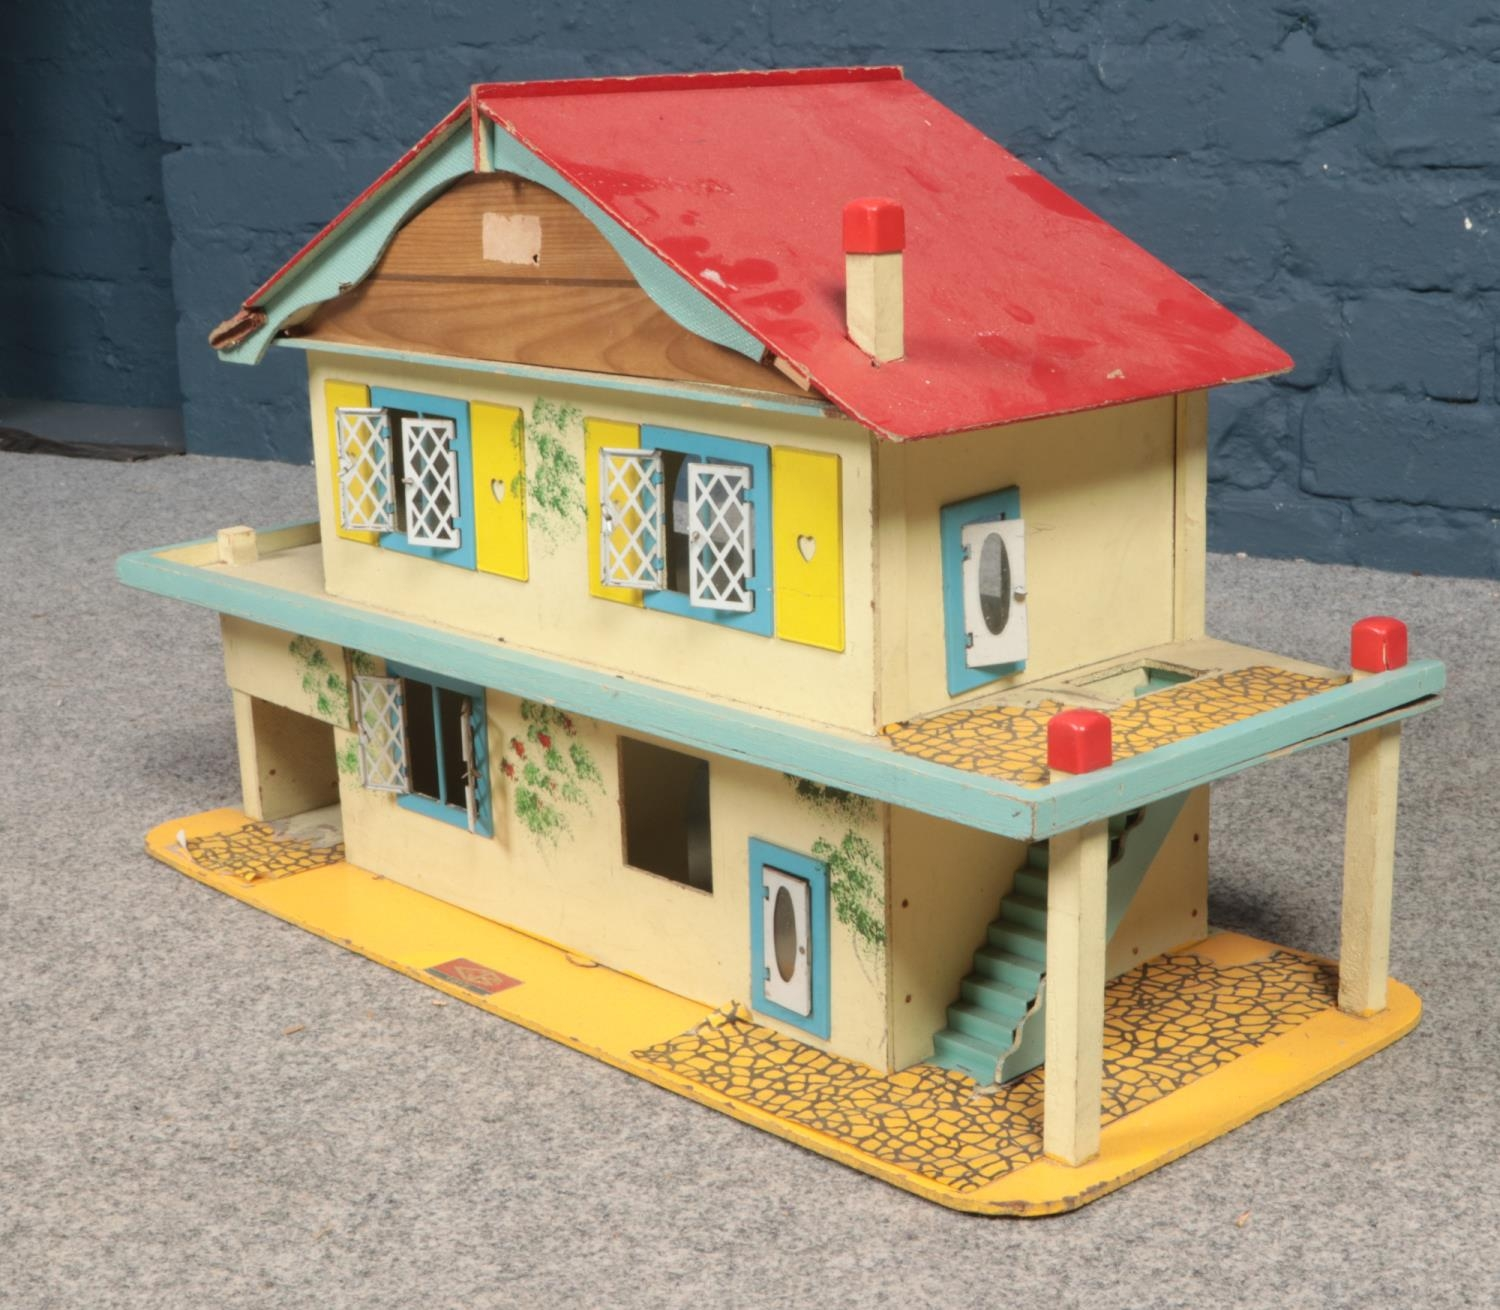 A Gee Bee Toys wooden dolls house. (68cm width, 42cm height, 29cm depth) Age/play worn - Image 2 of 2